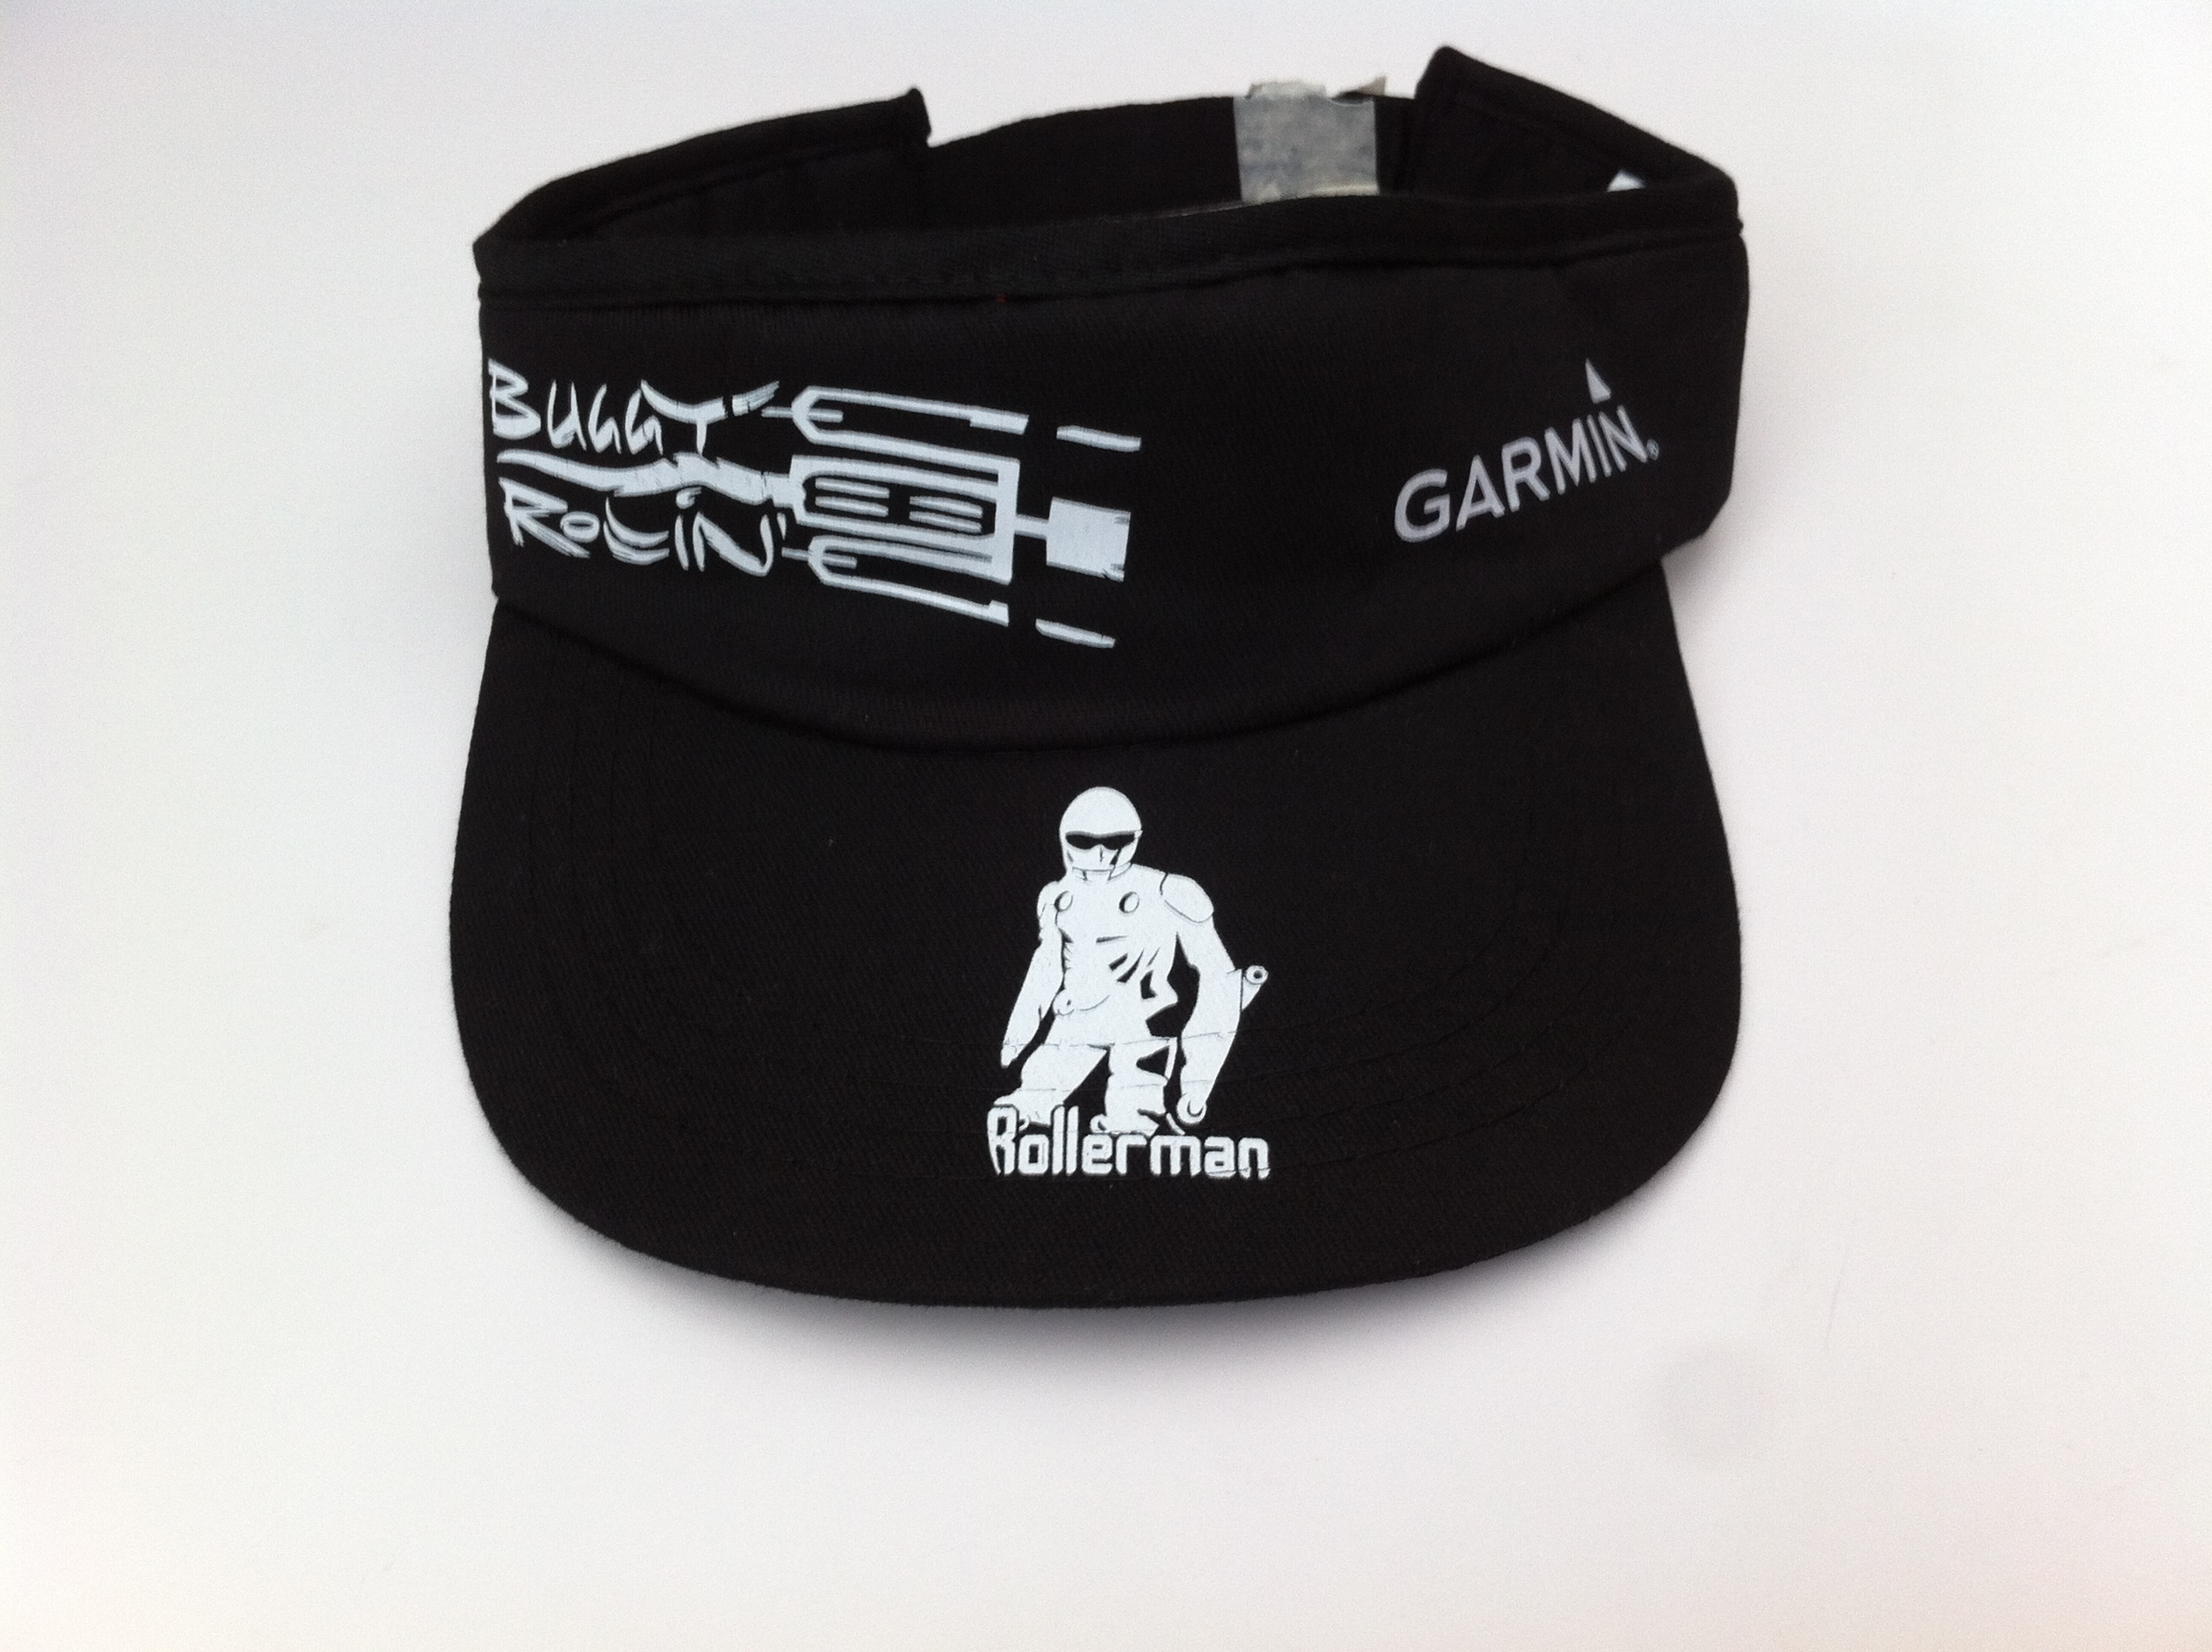 garmin buggy rollin golf cap alone front